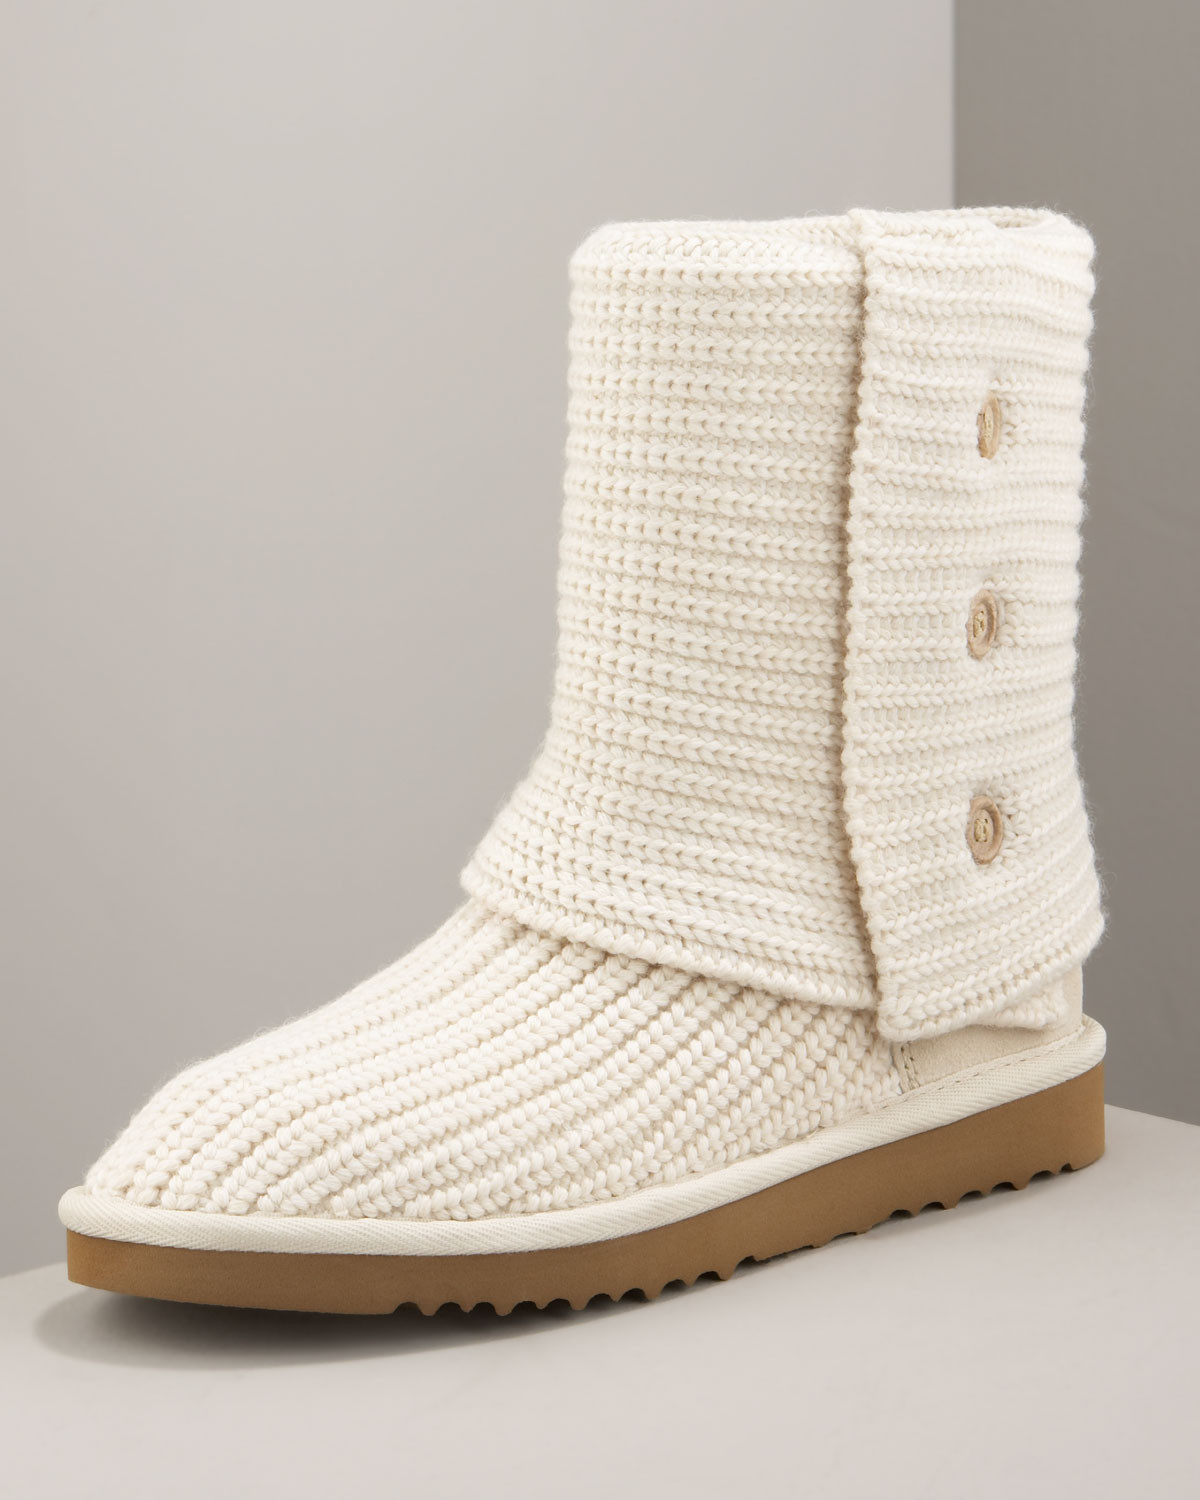 Unique Ugg Classic Cardy Crochet Boot Cream In Natural Crochet Ugg Boots Of Beautiful 42 Ideas Crochet Ugg Boots